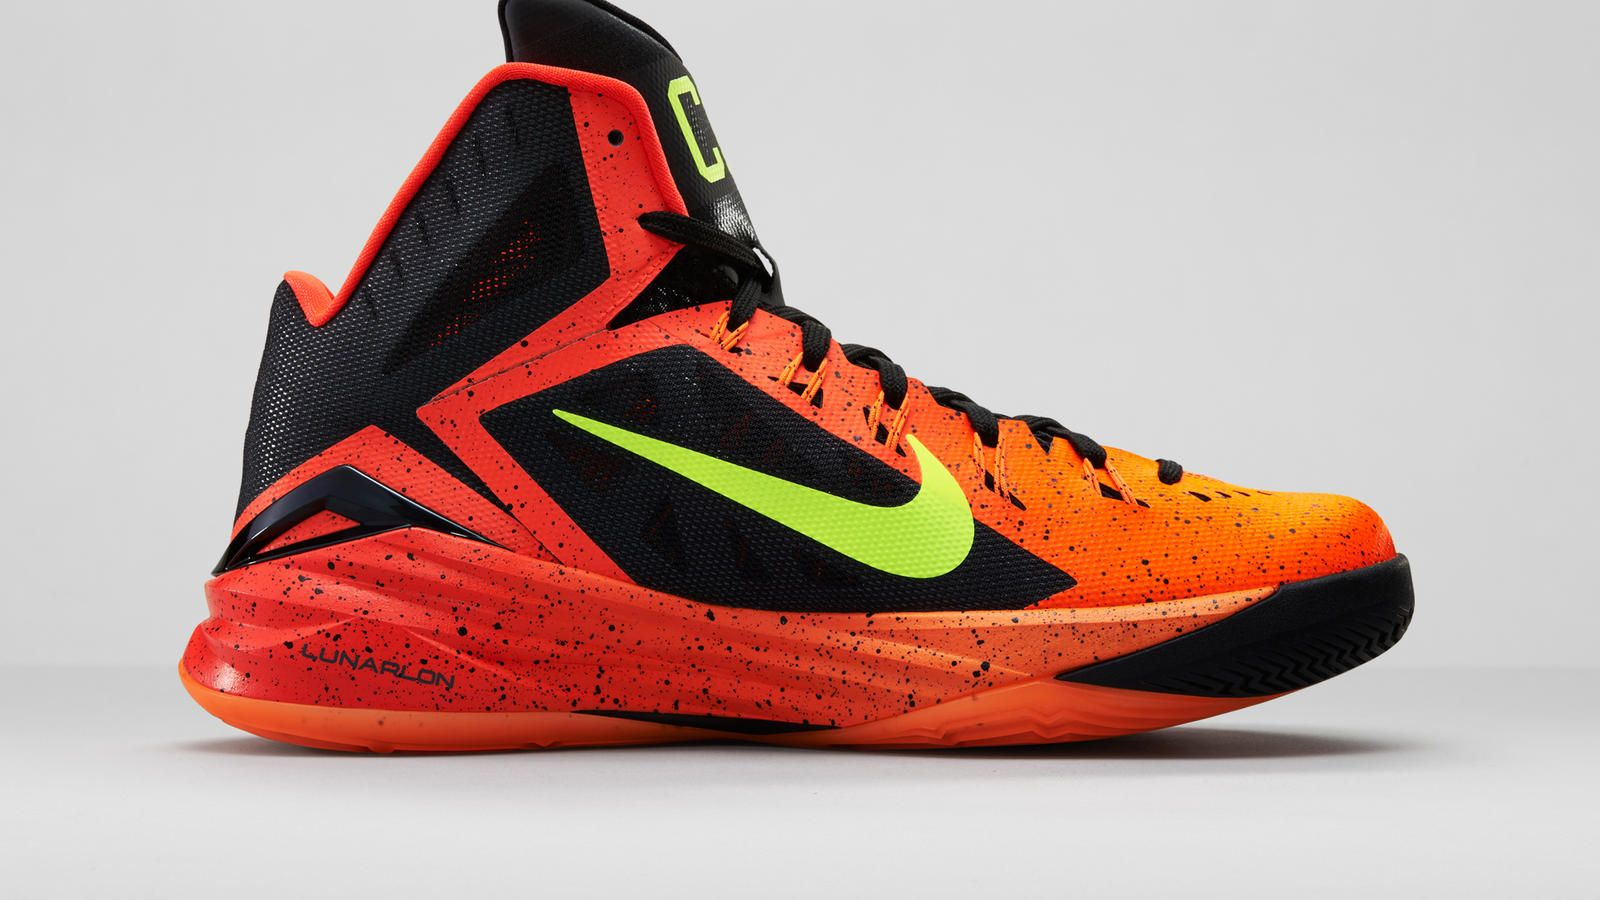 detailing 1f7fe 5c4d9 1600x900 Nike Hyperdunk 2014 City Pack Takes the Court at World Basketball .